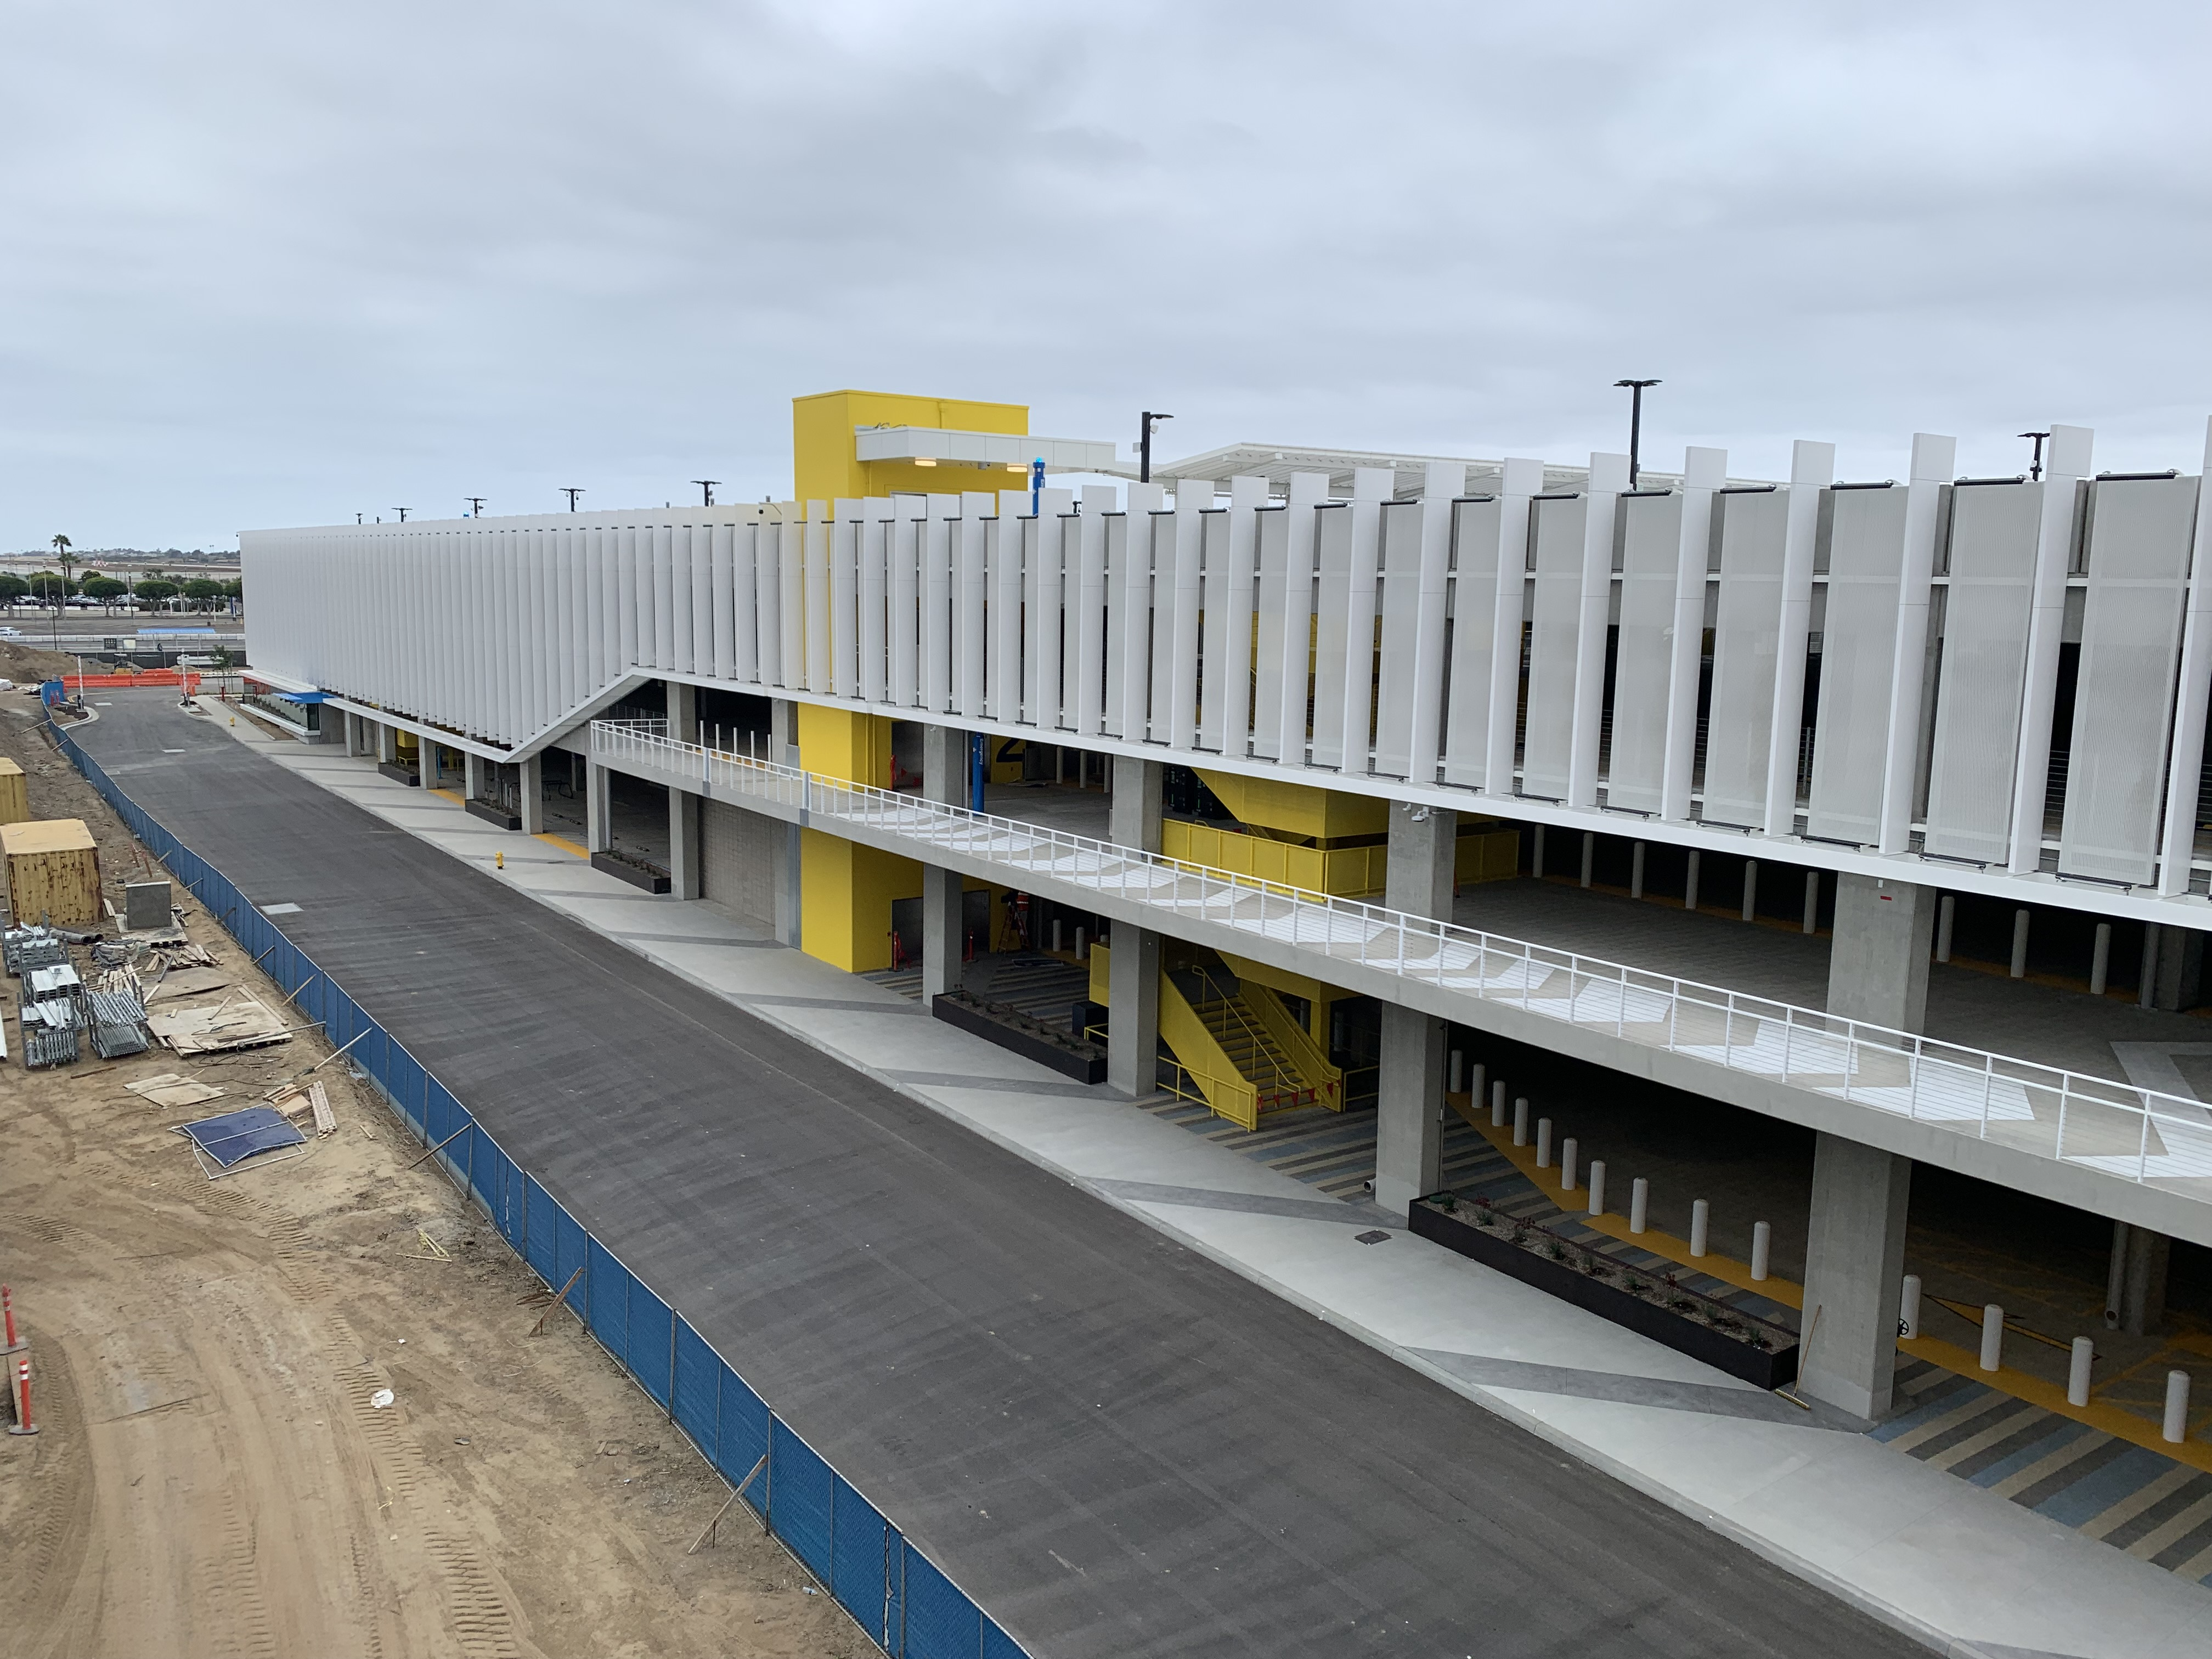 A view of the Intermodal Transportation Facility-West from the Automated People Mover train guideway.